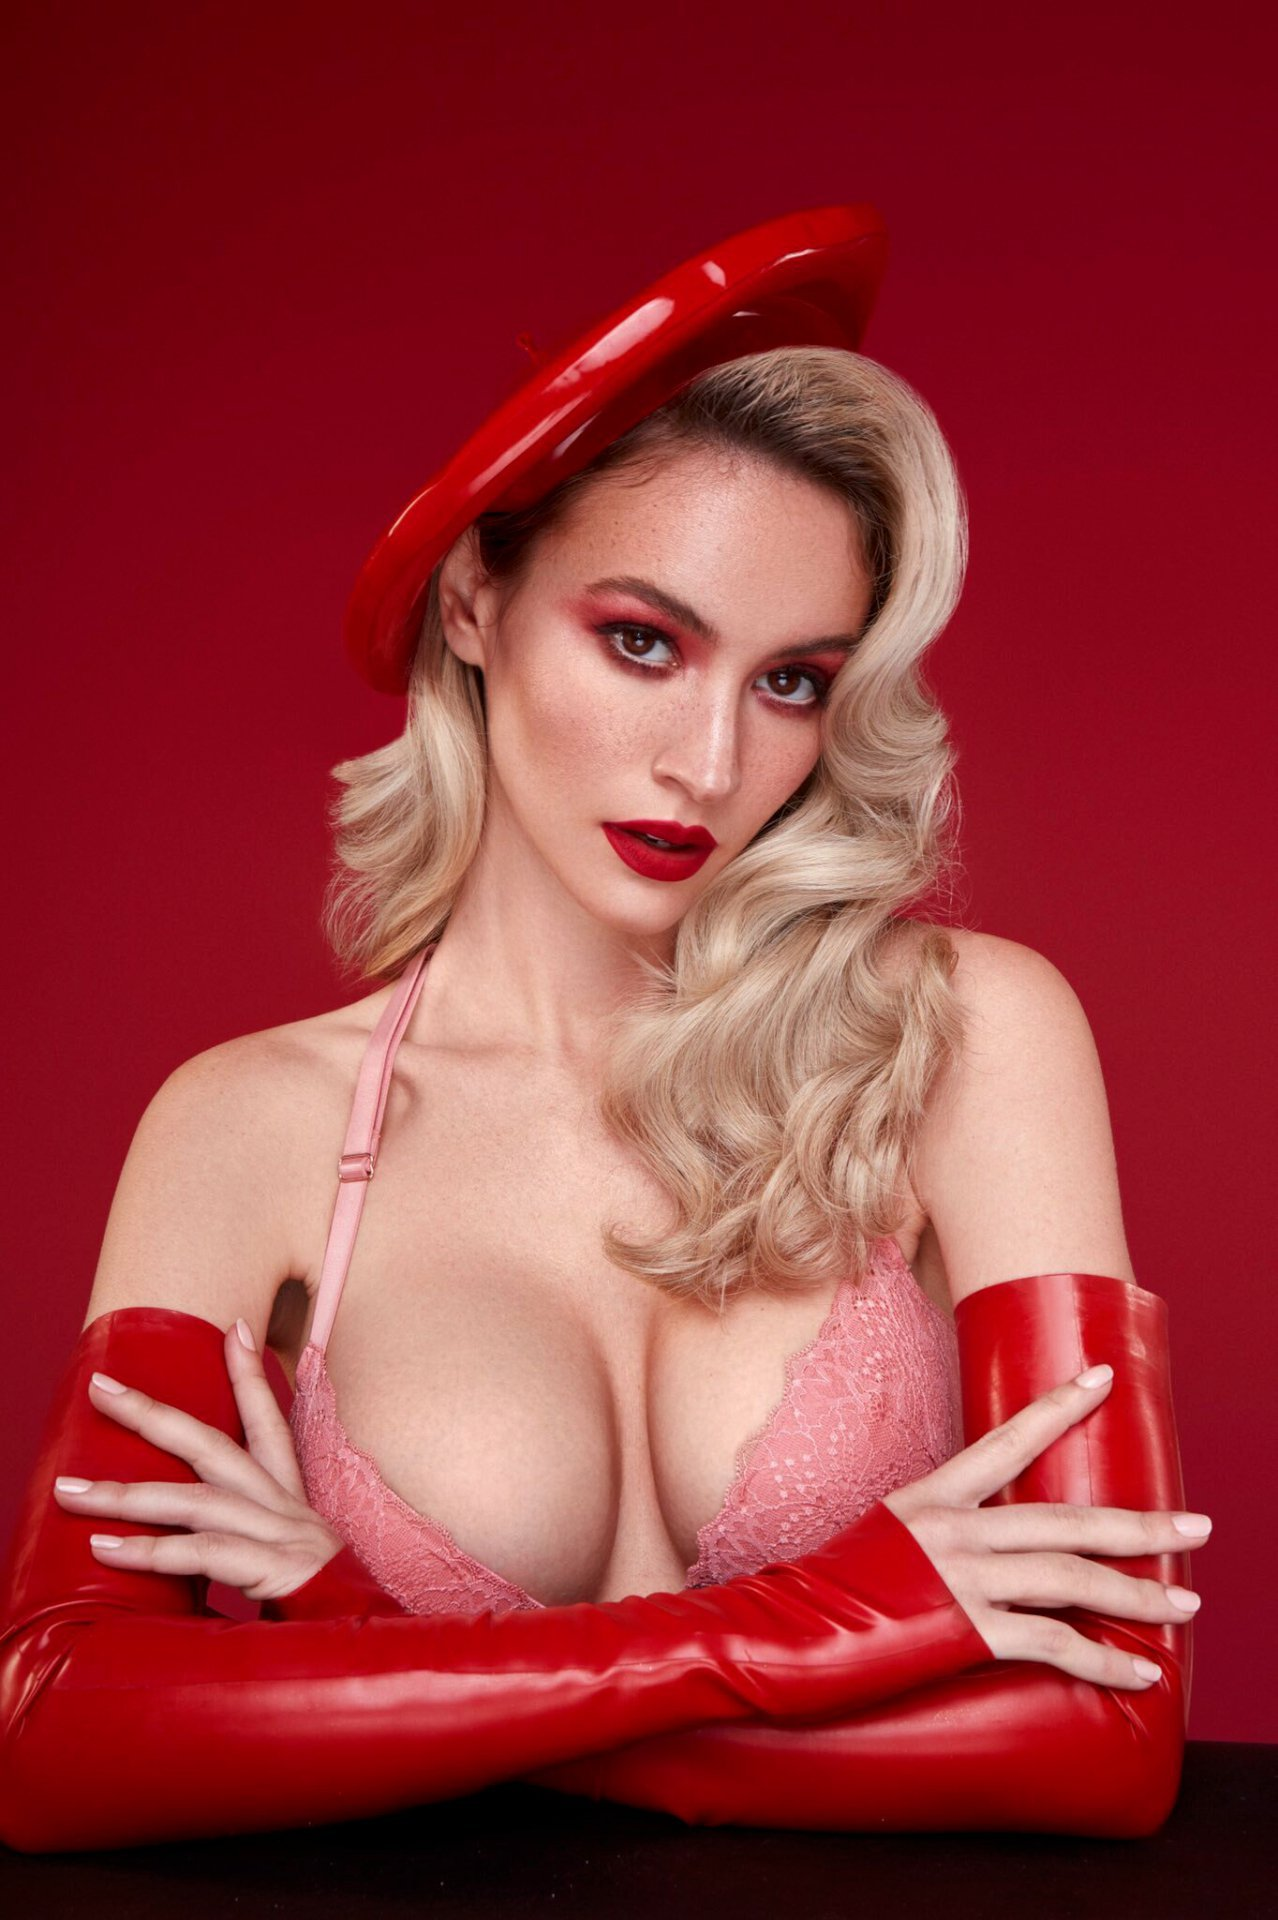 Bryana Holly – Valentine's Day Lingerie Photoshoot